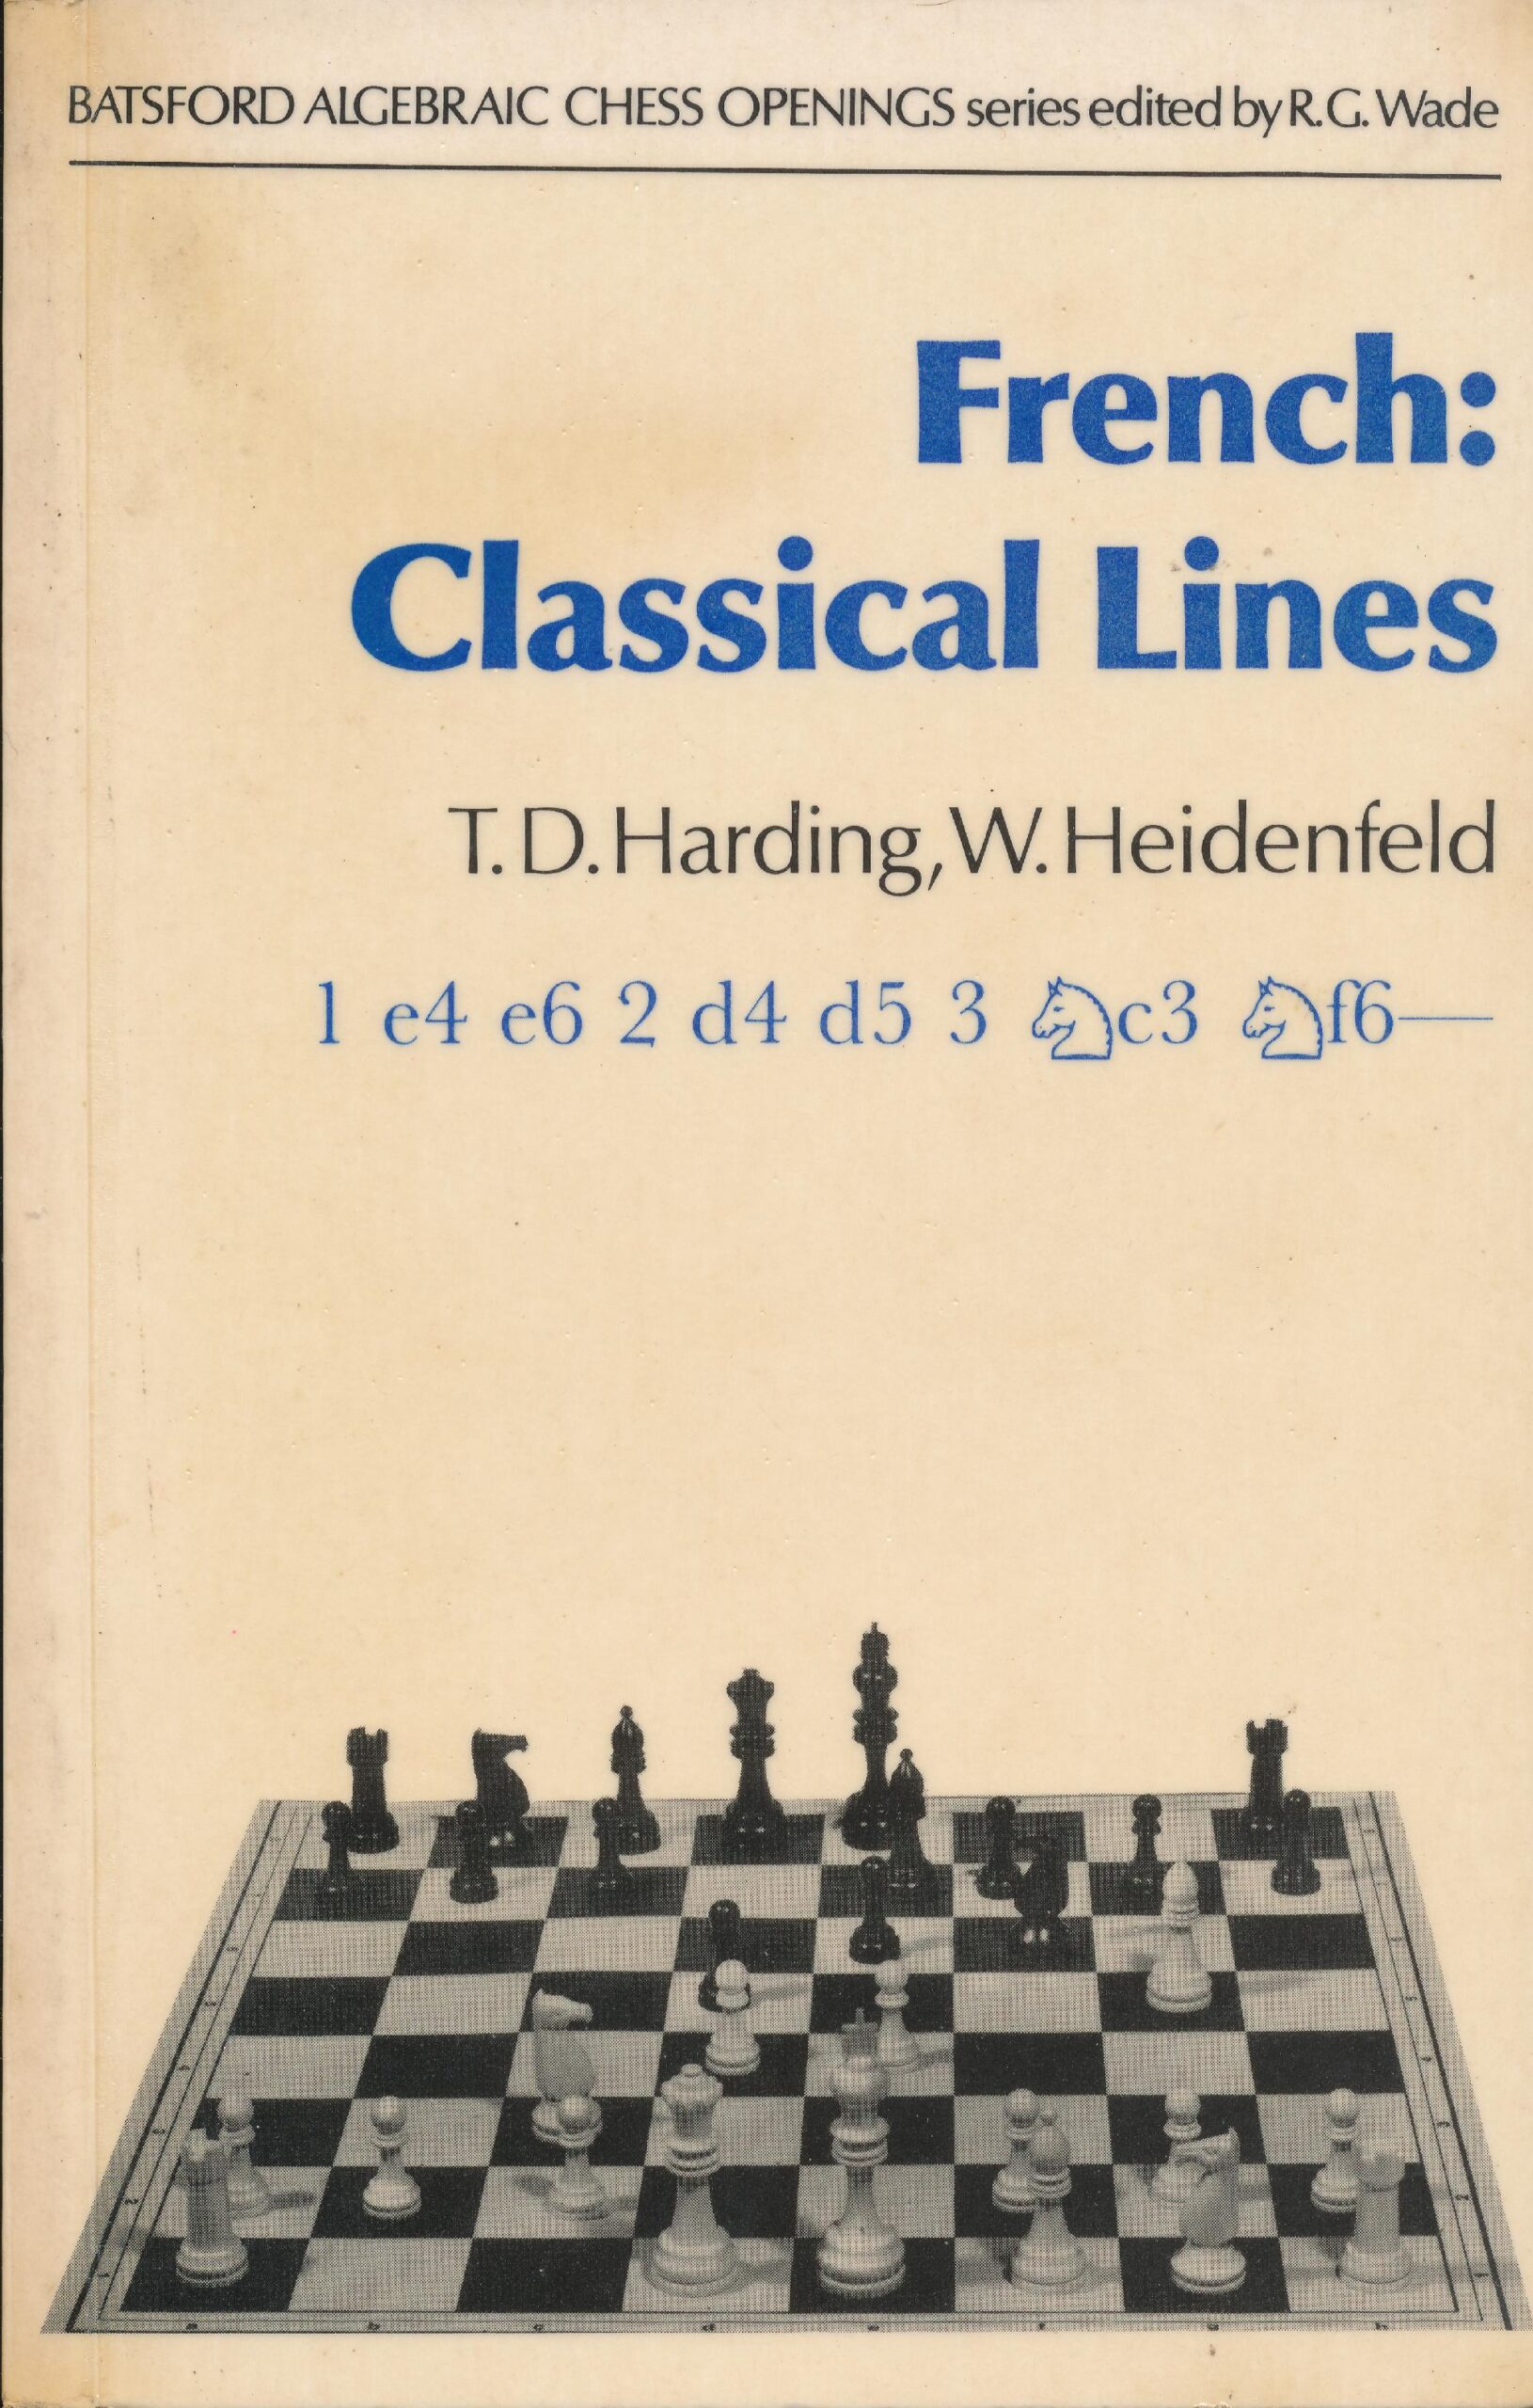 French: Classical Lines, Batsford, 1979